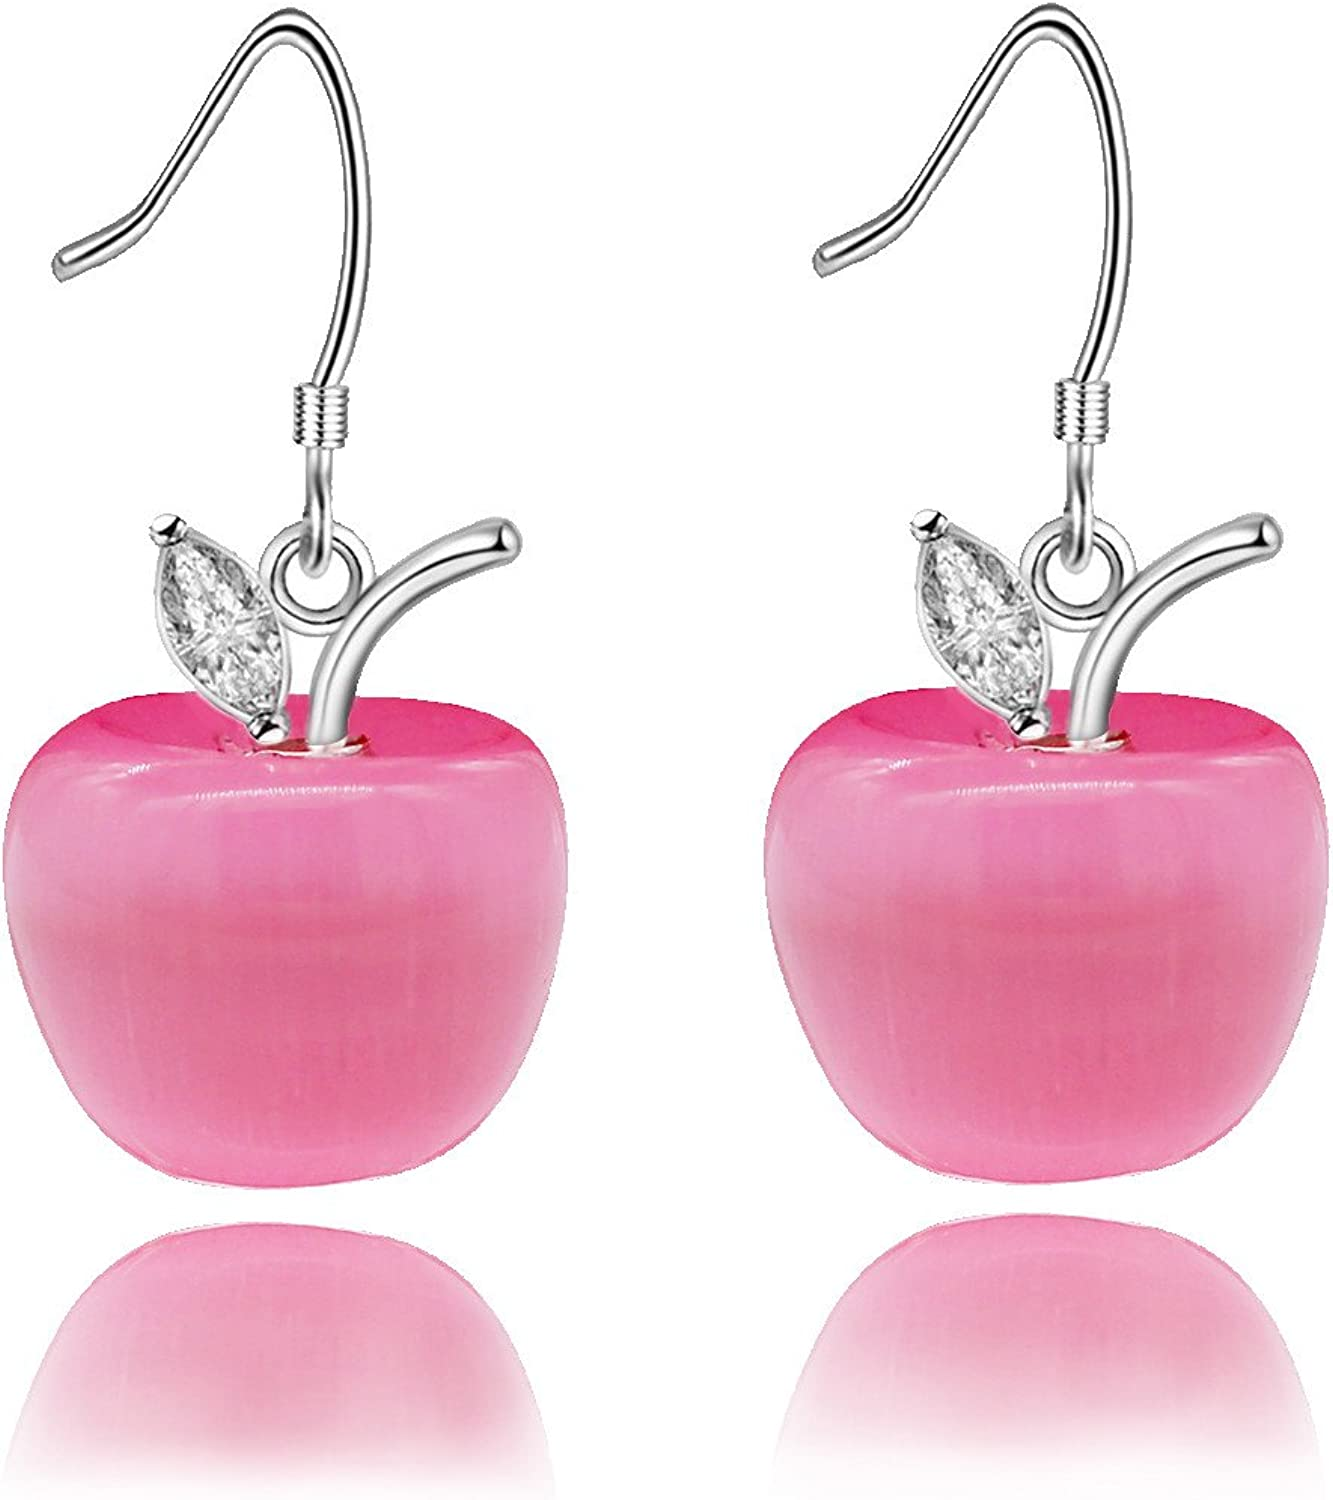 Uloveido Cute Apple Dangle Drop Fruit Stud Earrings Jewelry for Women and Teen Girls Kids with Crystal YL007